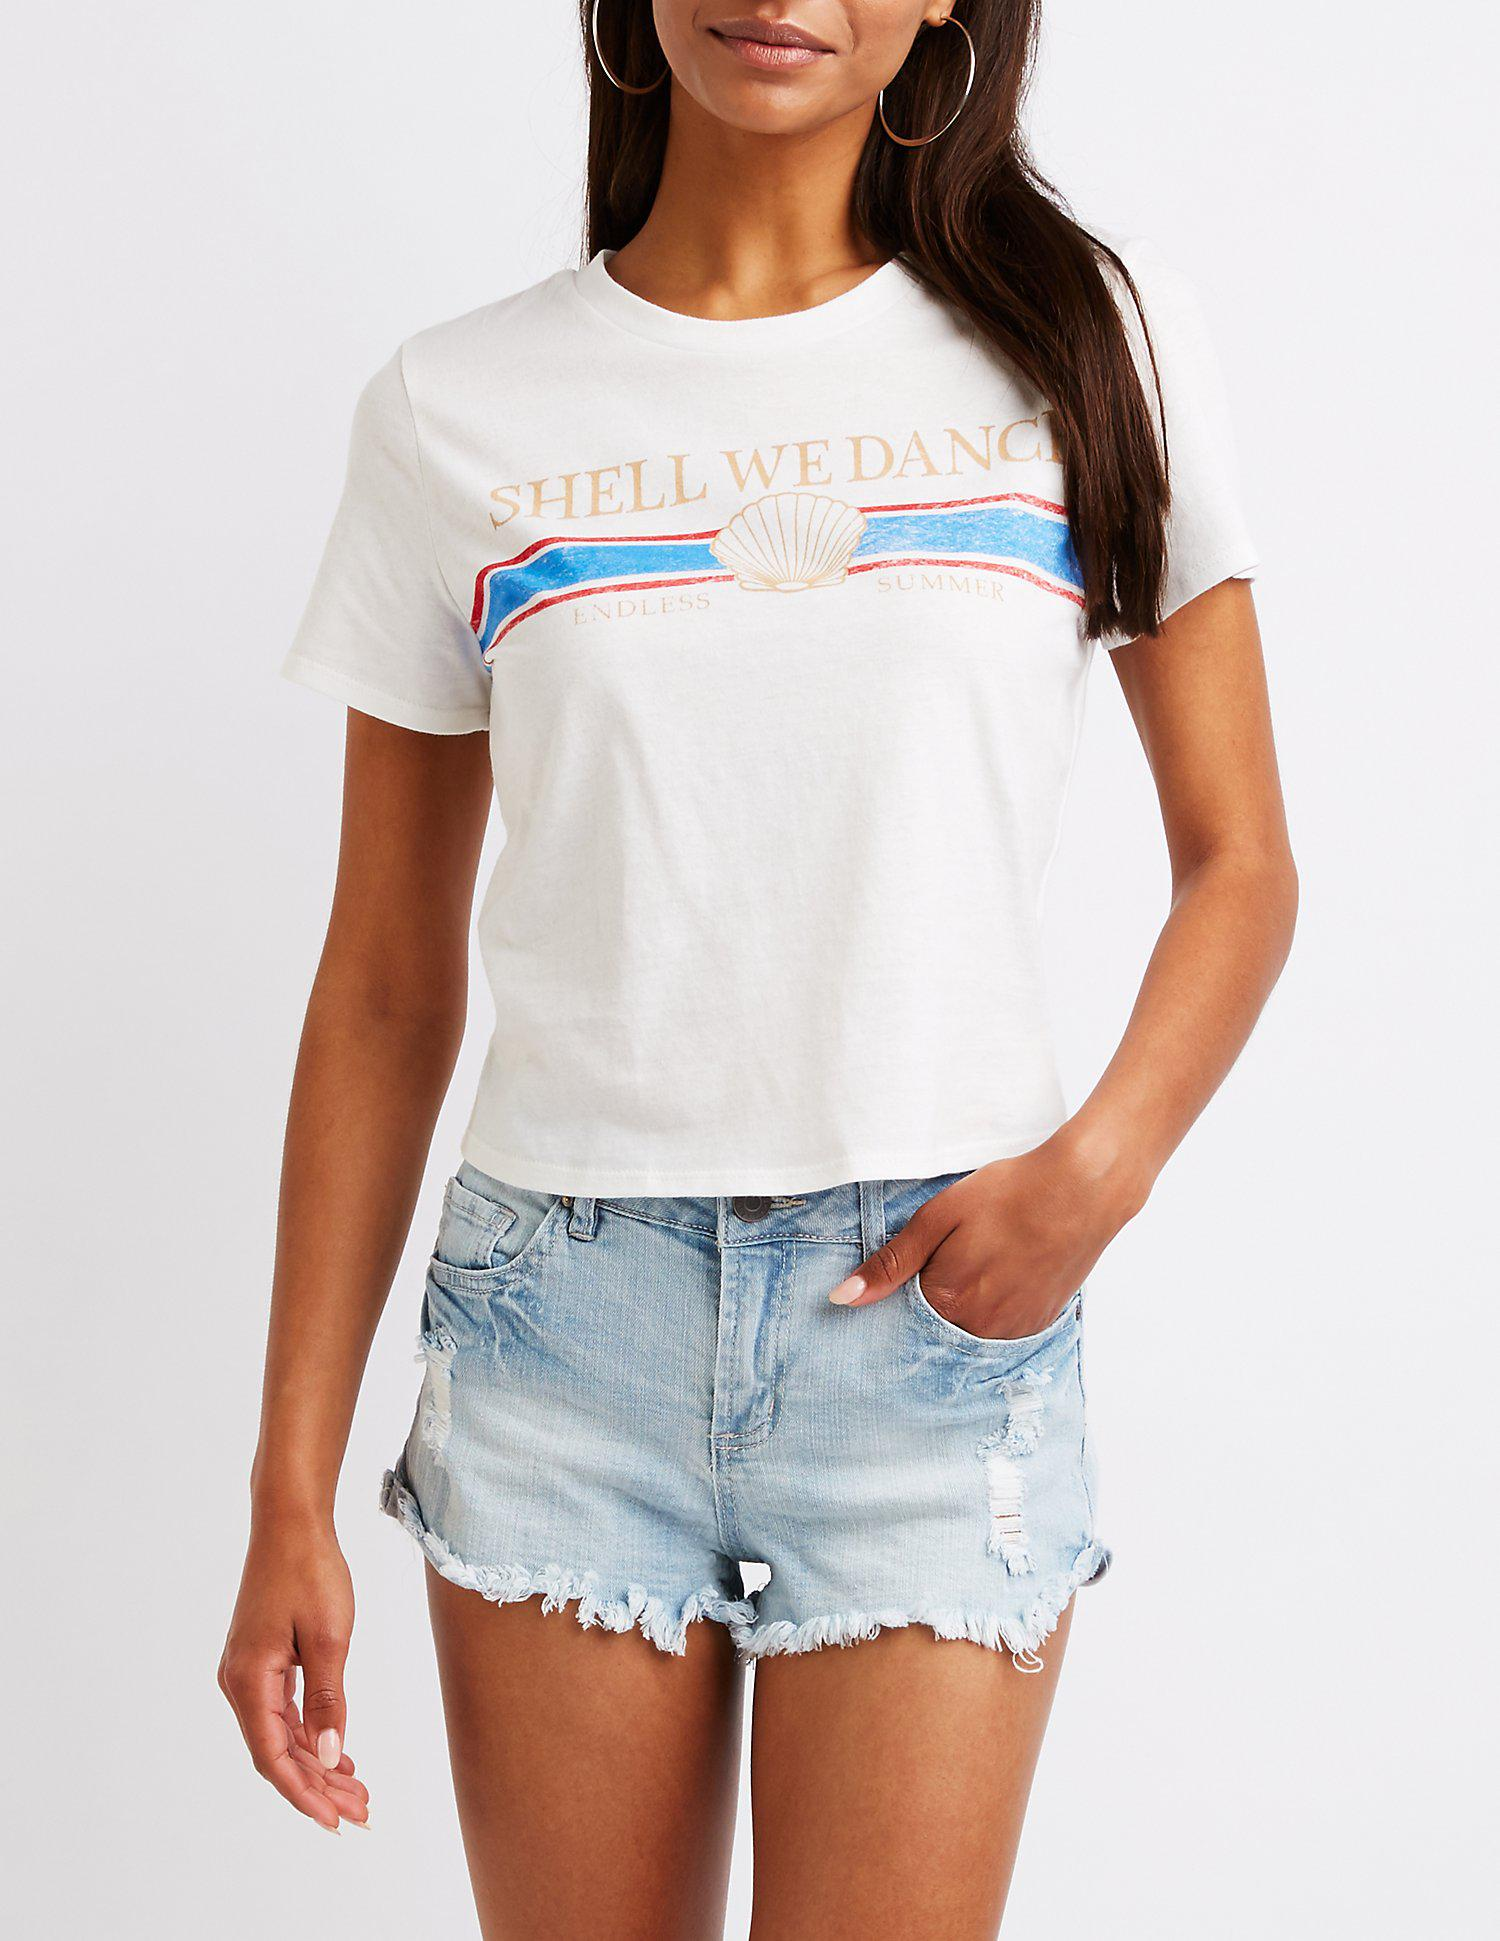 d668f140335 Lyst - Charlotte Russe Shell We Dance Tee in White